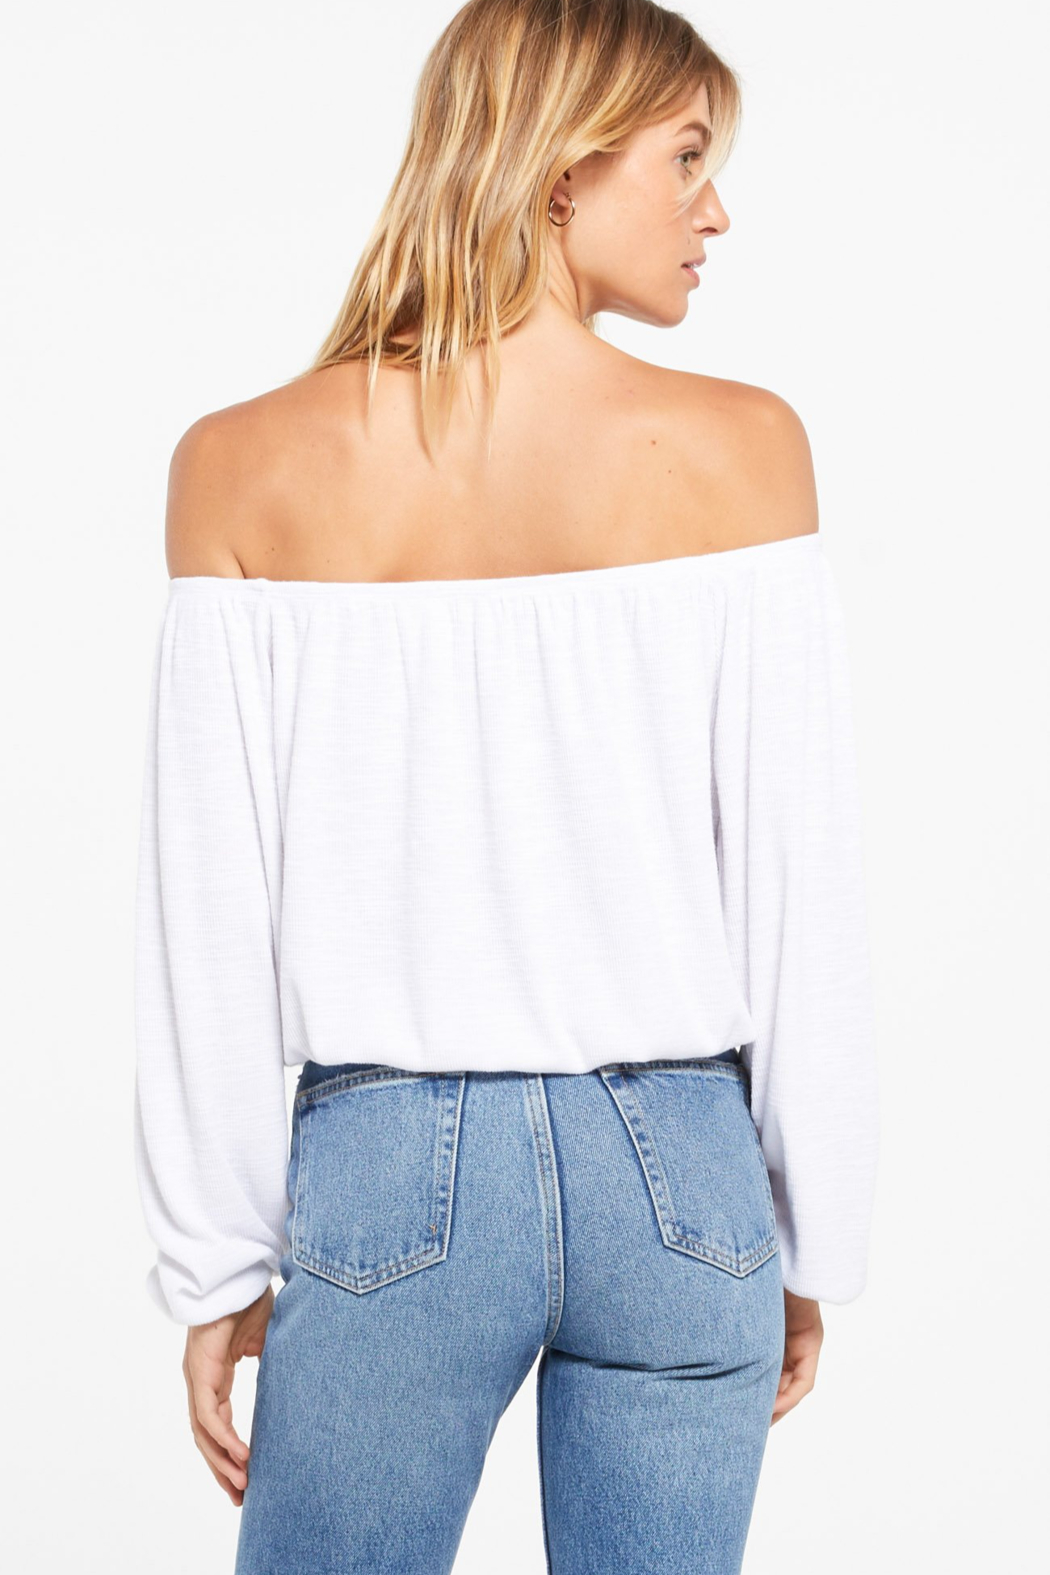 z supply Liv Slub Off Shoulder Top - Back Cropped Image